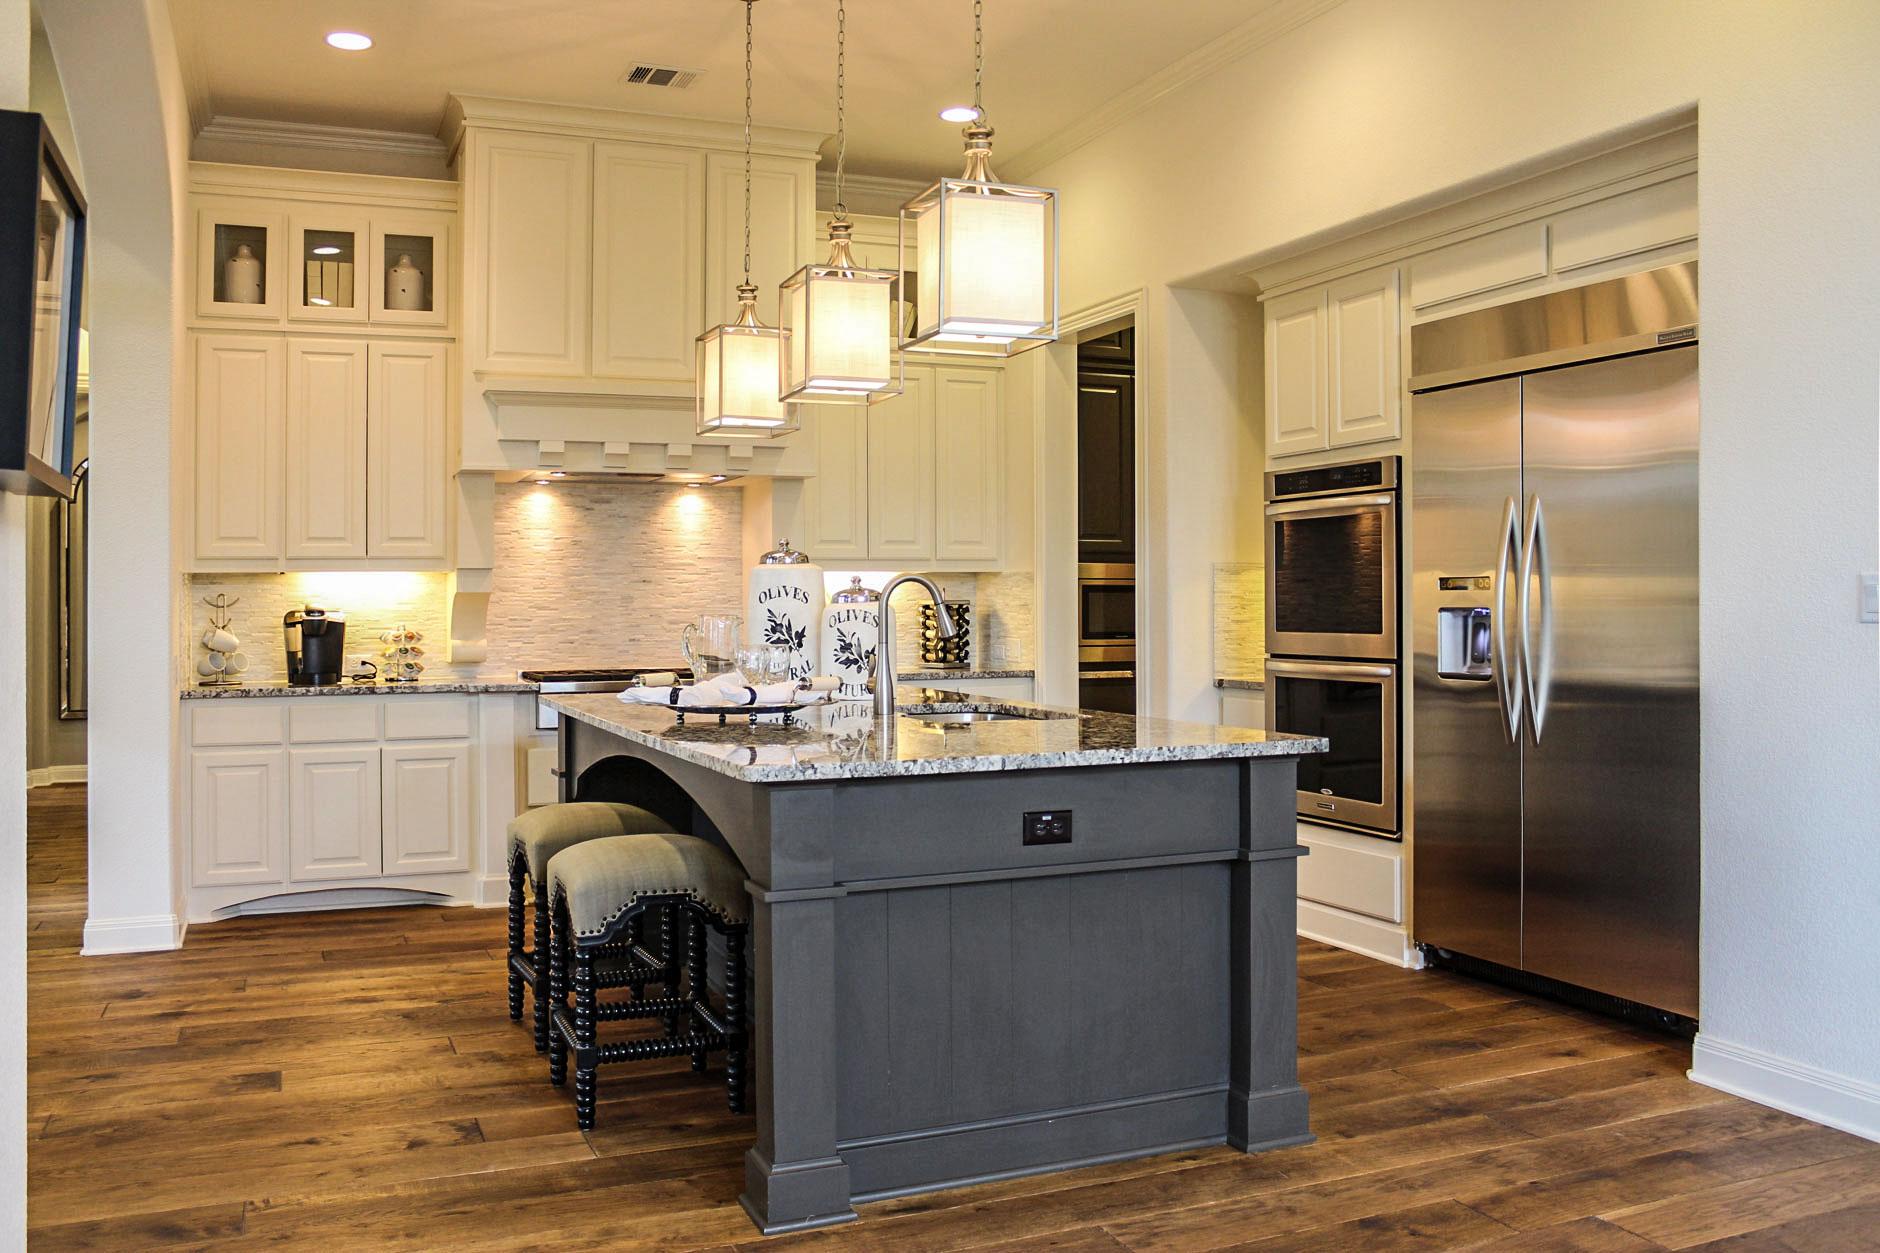 Kitchen cabinets in bone white with custom wood vent hood